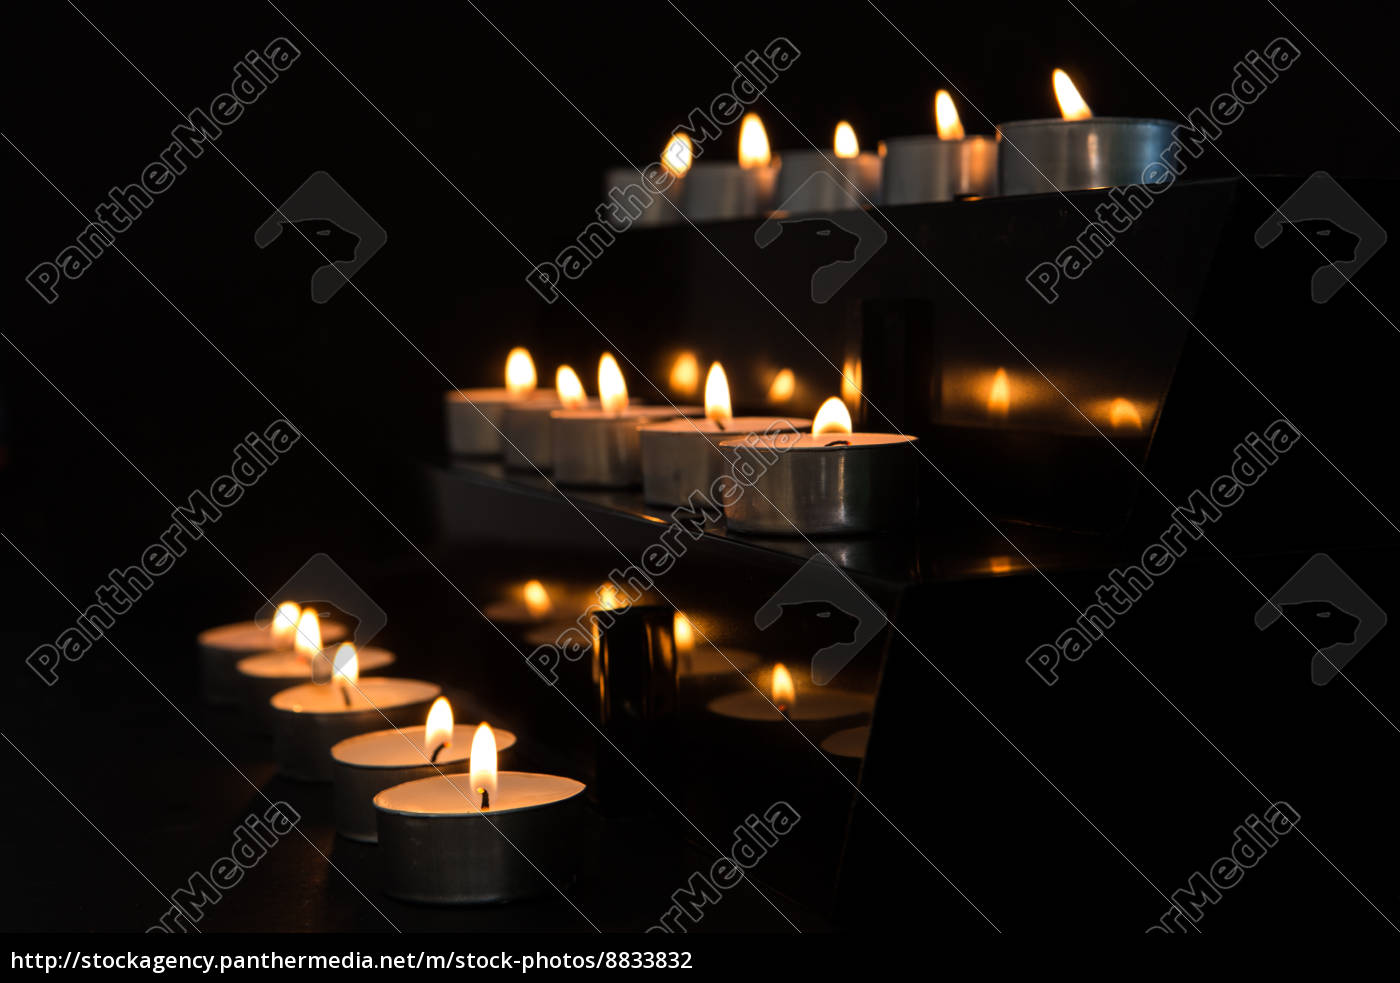 Royalty Free Photo 8833832 Tea Light Candles At The Alter In Darkness